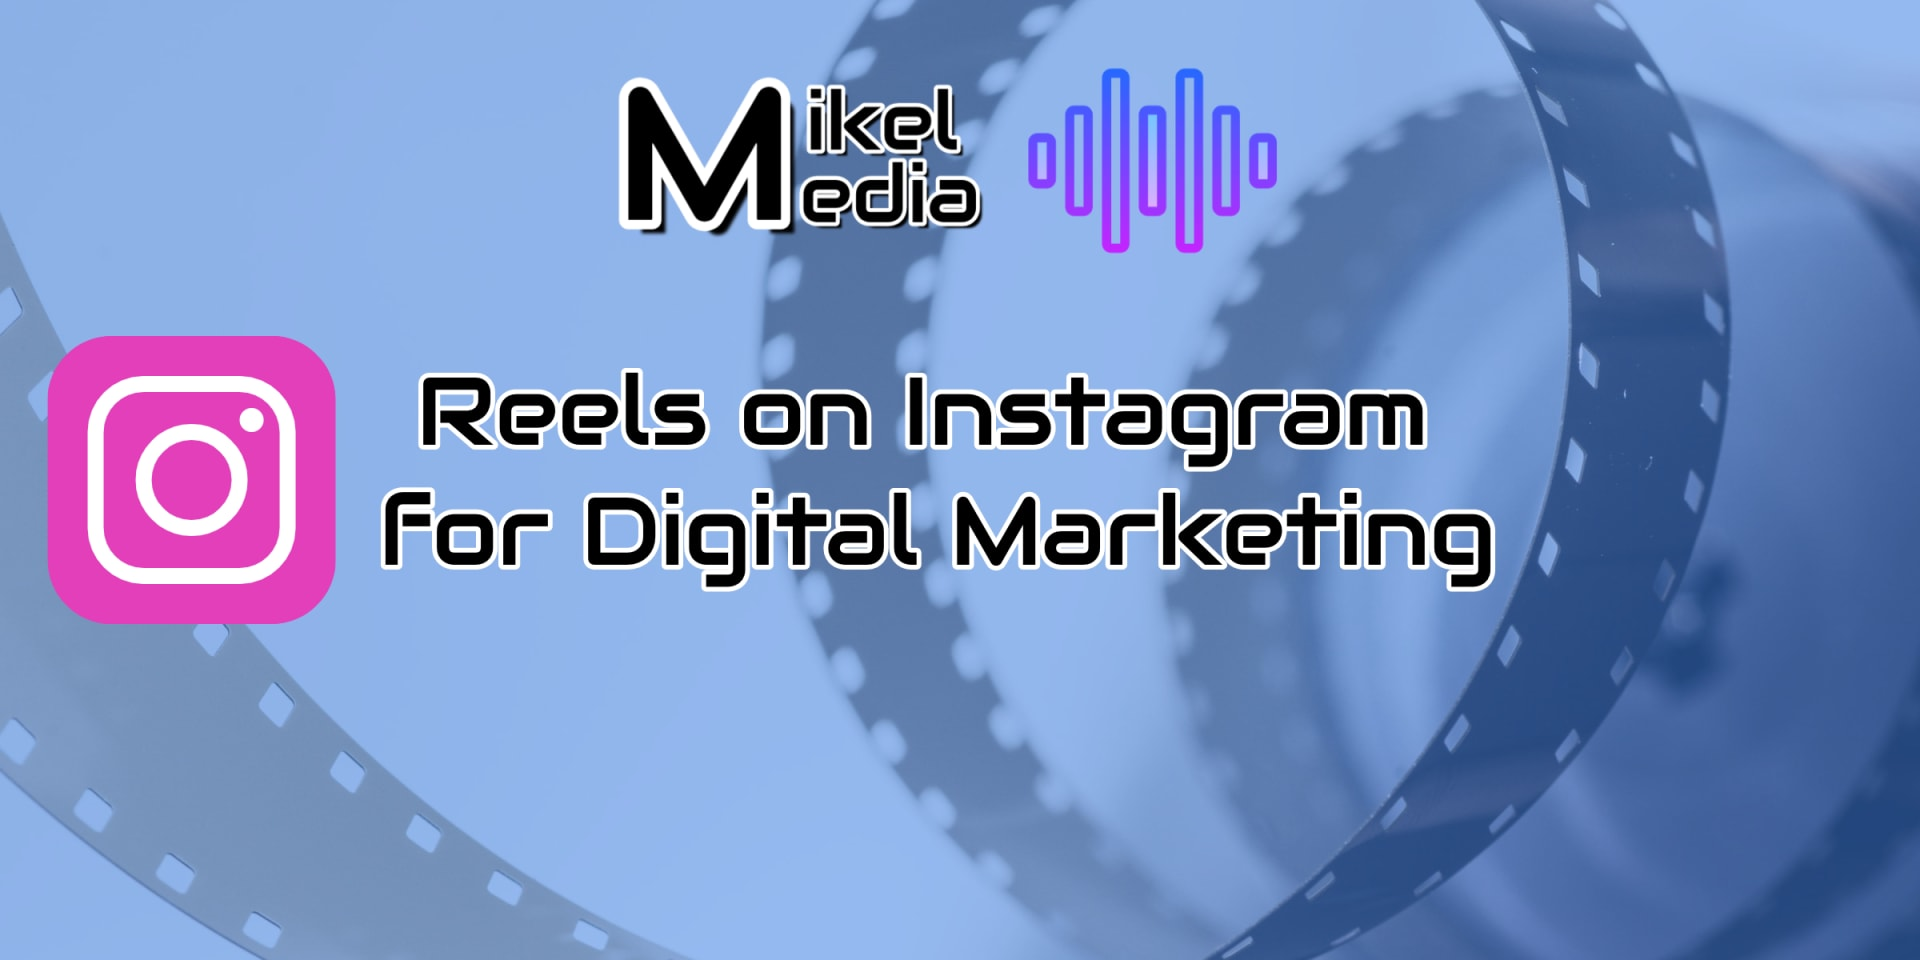 Digital Marketing with Reels